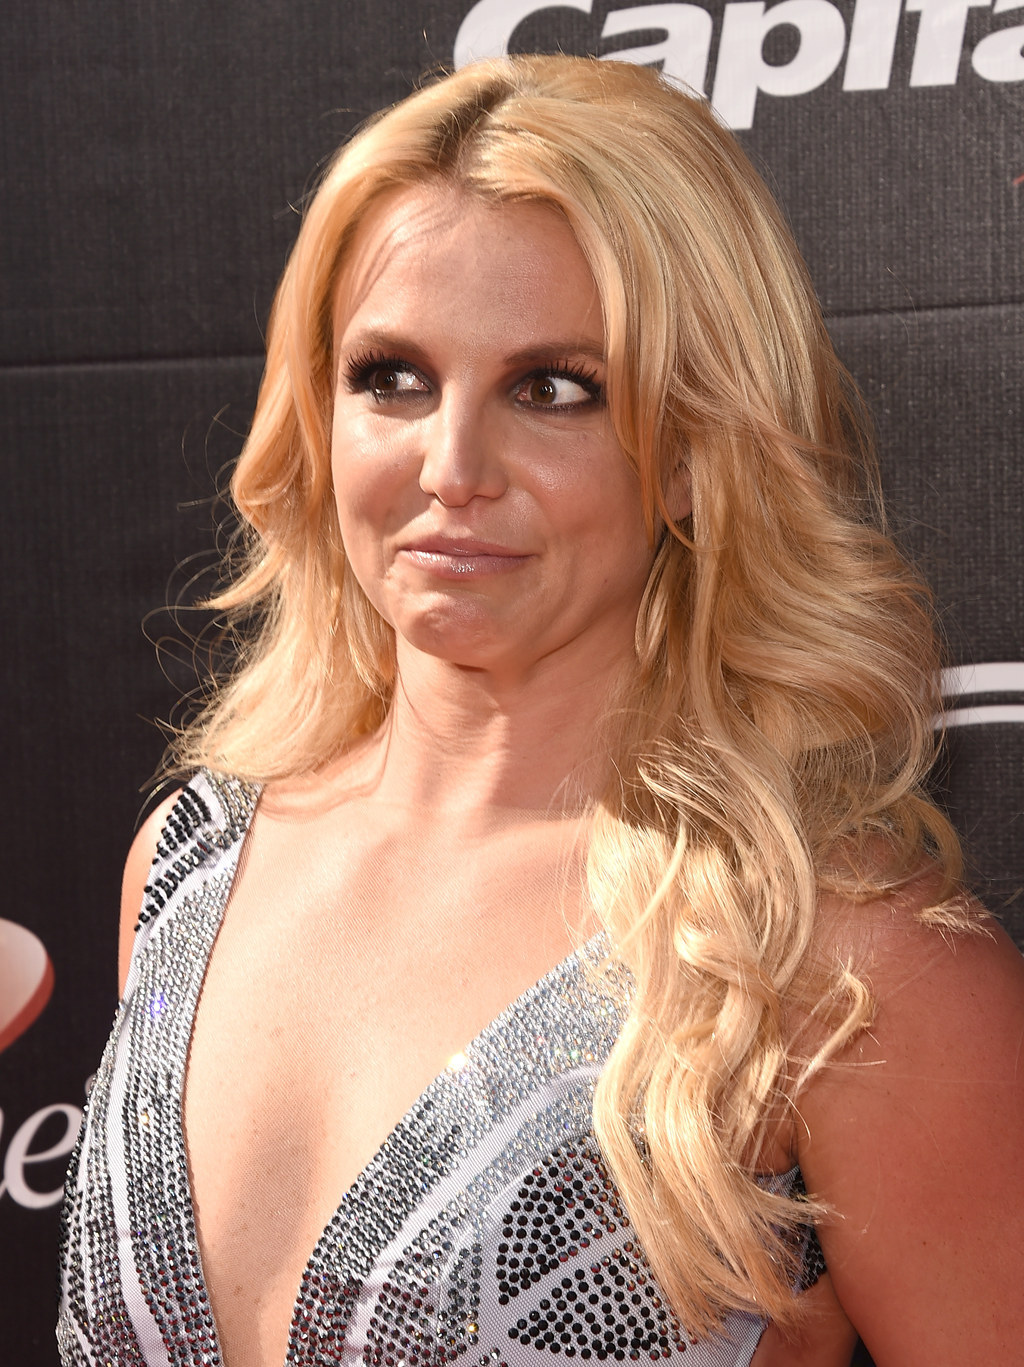 13 Faces Britney Spears Made At The ESPYs That Will Give You Life